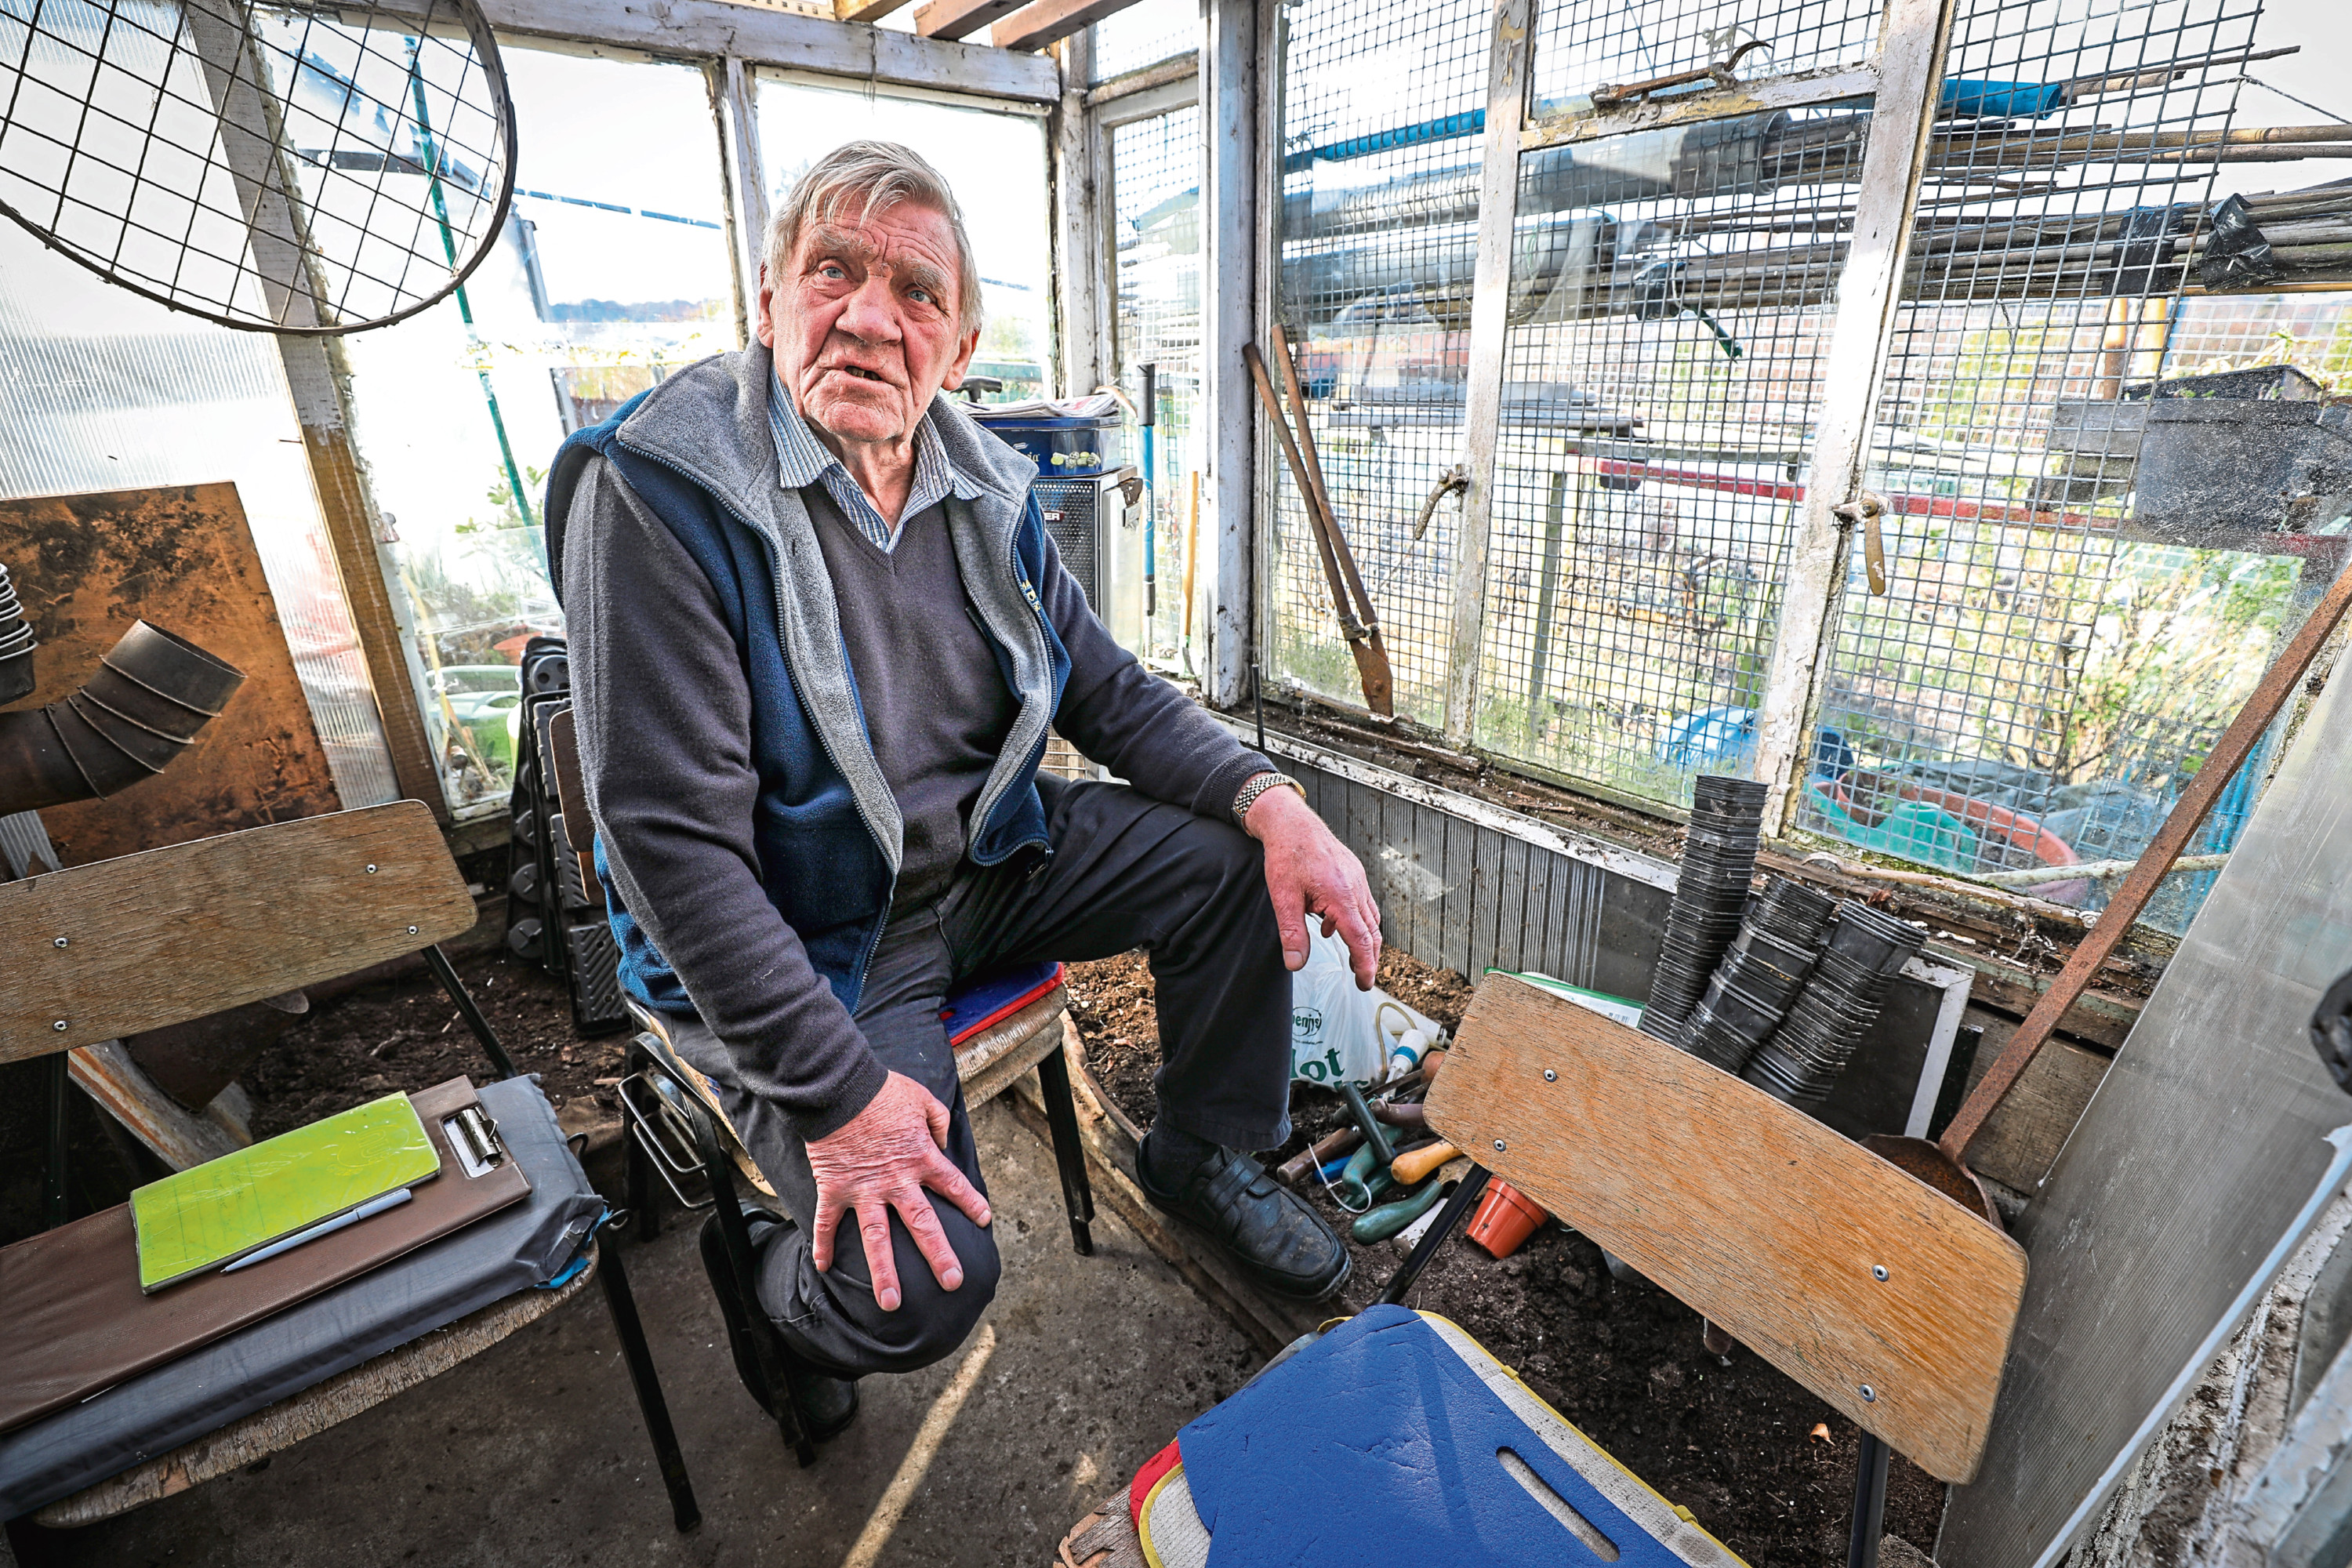 Don Elder locked himself in his allotment shed in protest at plans to evict him